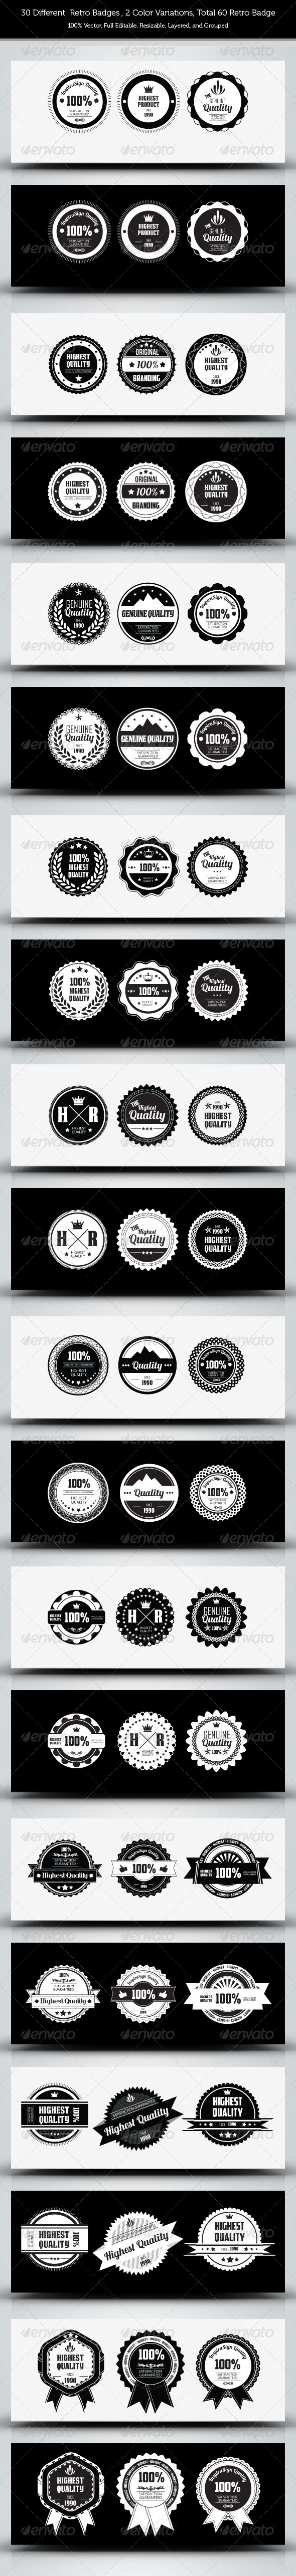 30 Genuine Quality - Retro Badges - Web Elements Vectors